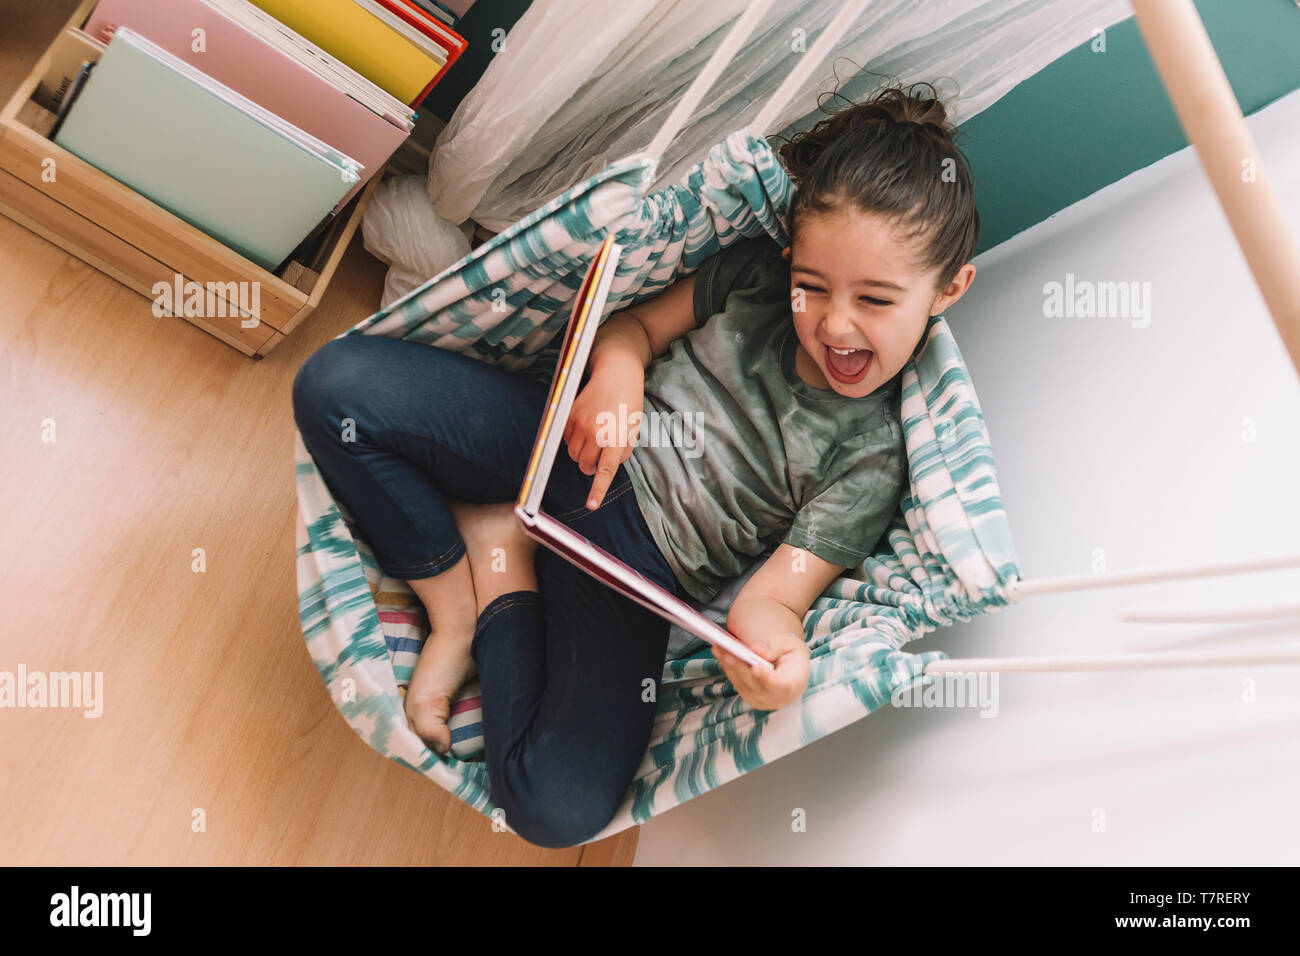 little girl laughs out loud reading a book at home near the window, funny lovely child having fun in her kids room, copy space for text Stock Photo